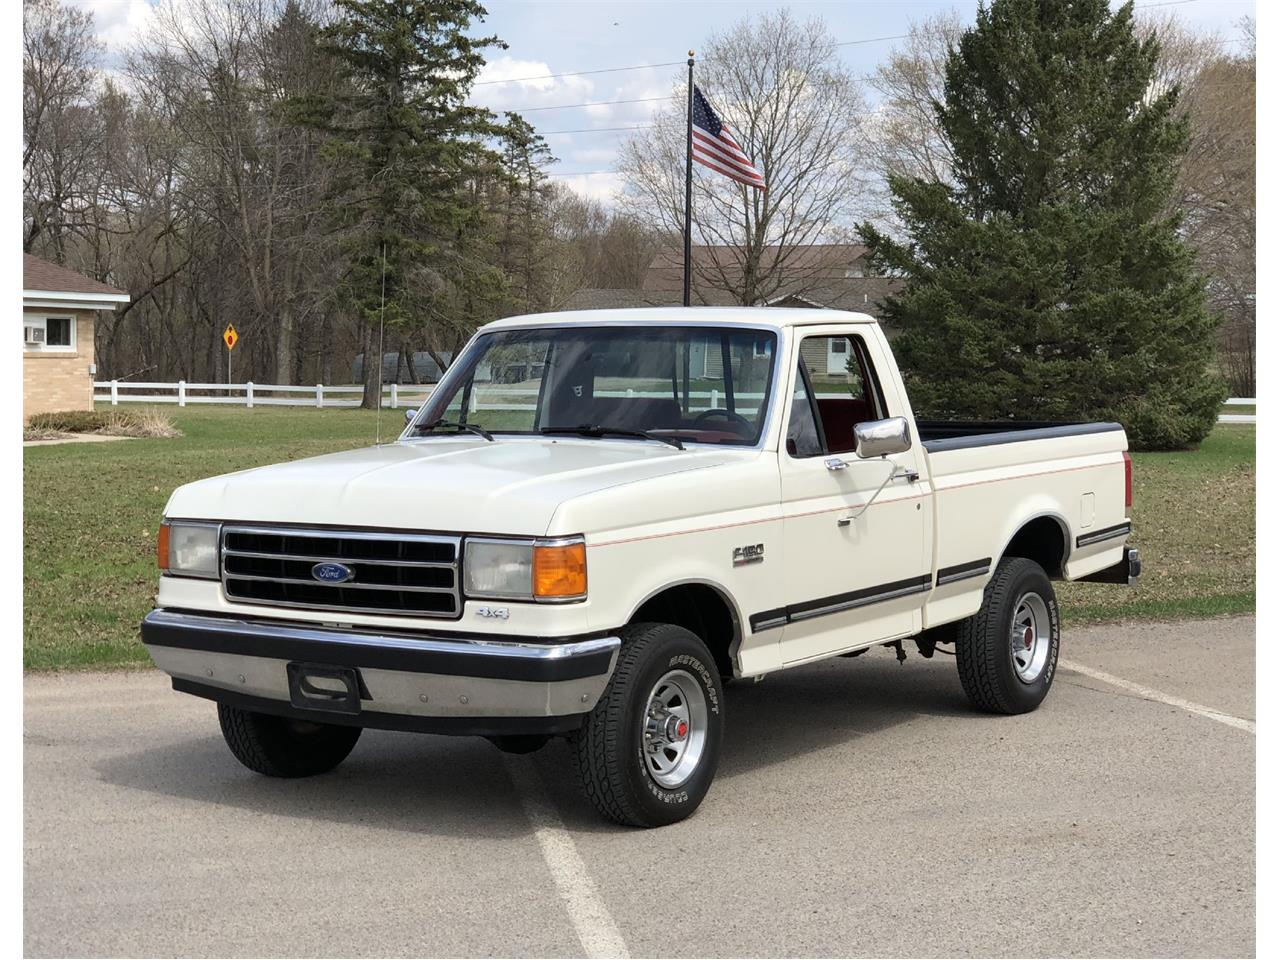 Large picture of 90 f150 ndyy